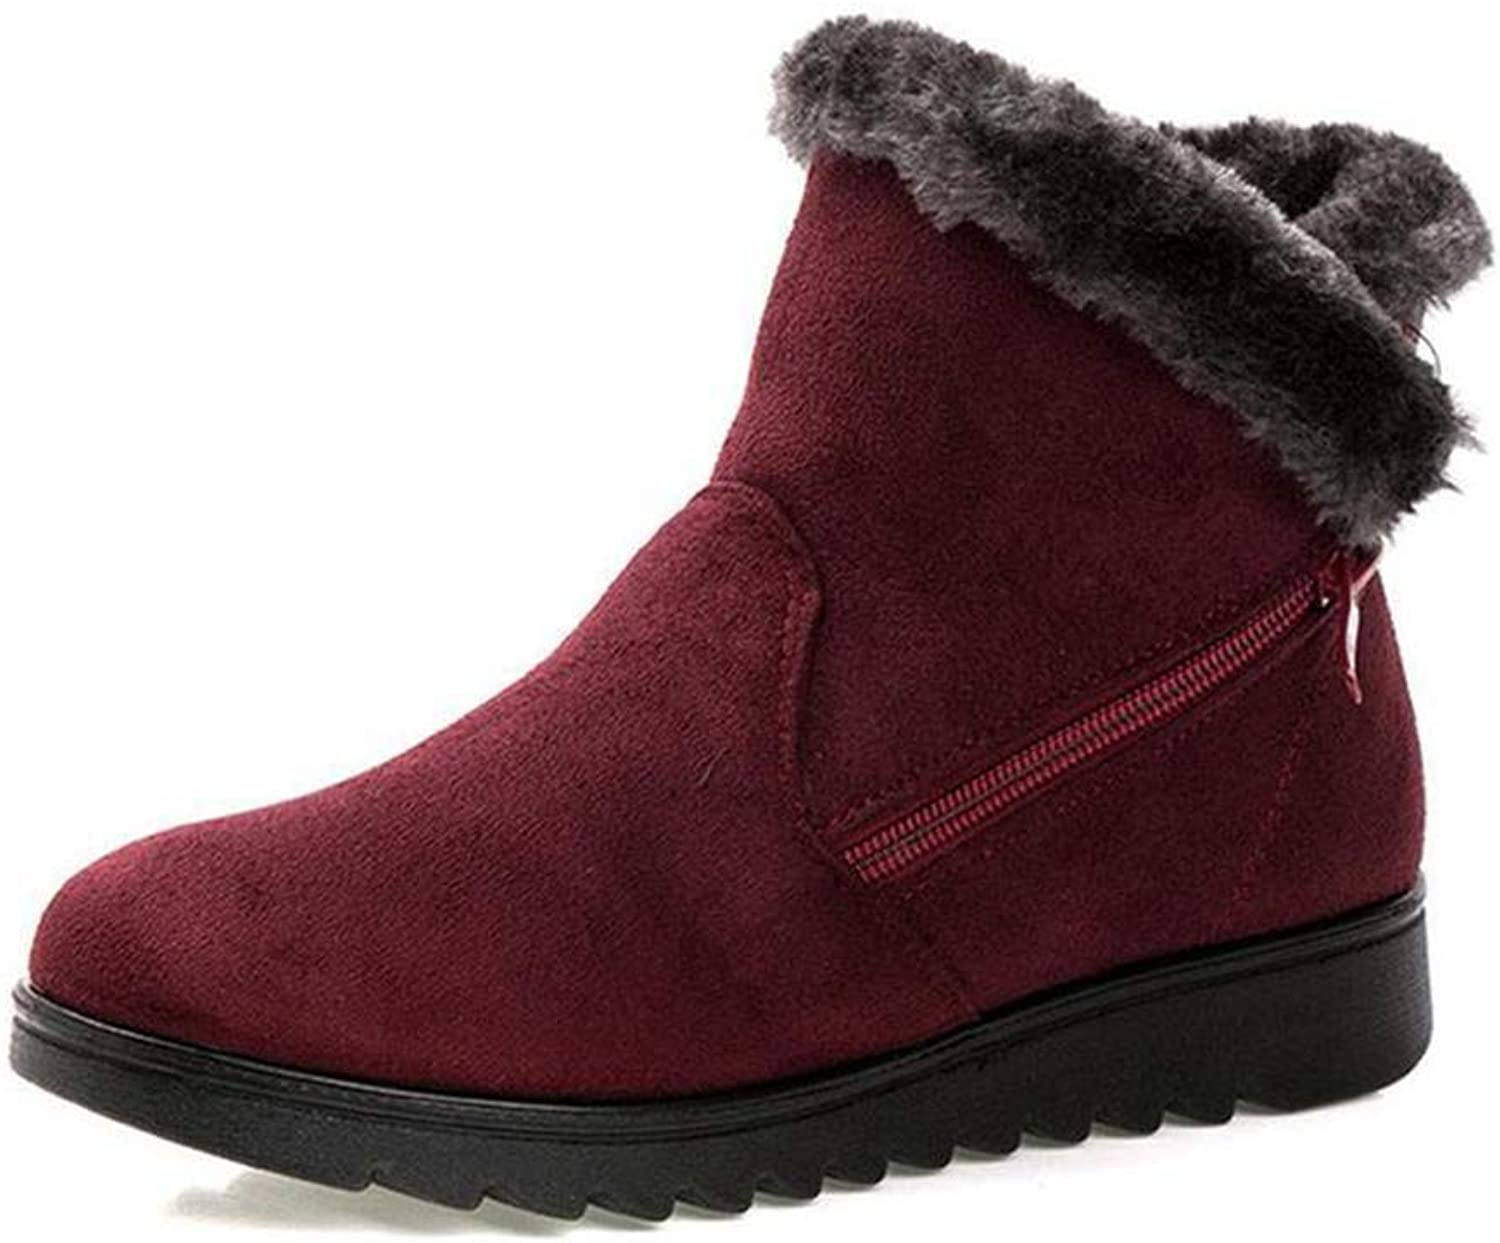 Zarbrina Womens Fur Lined Flat Platform Ankle Boots Casual Soft Rubber Sole Round Toe Short Plush Slip On Winter Warm Snow shoes